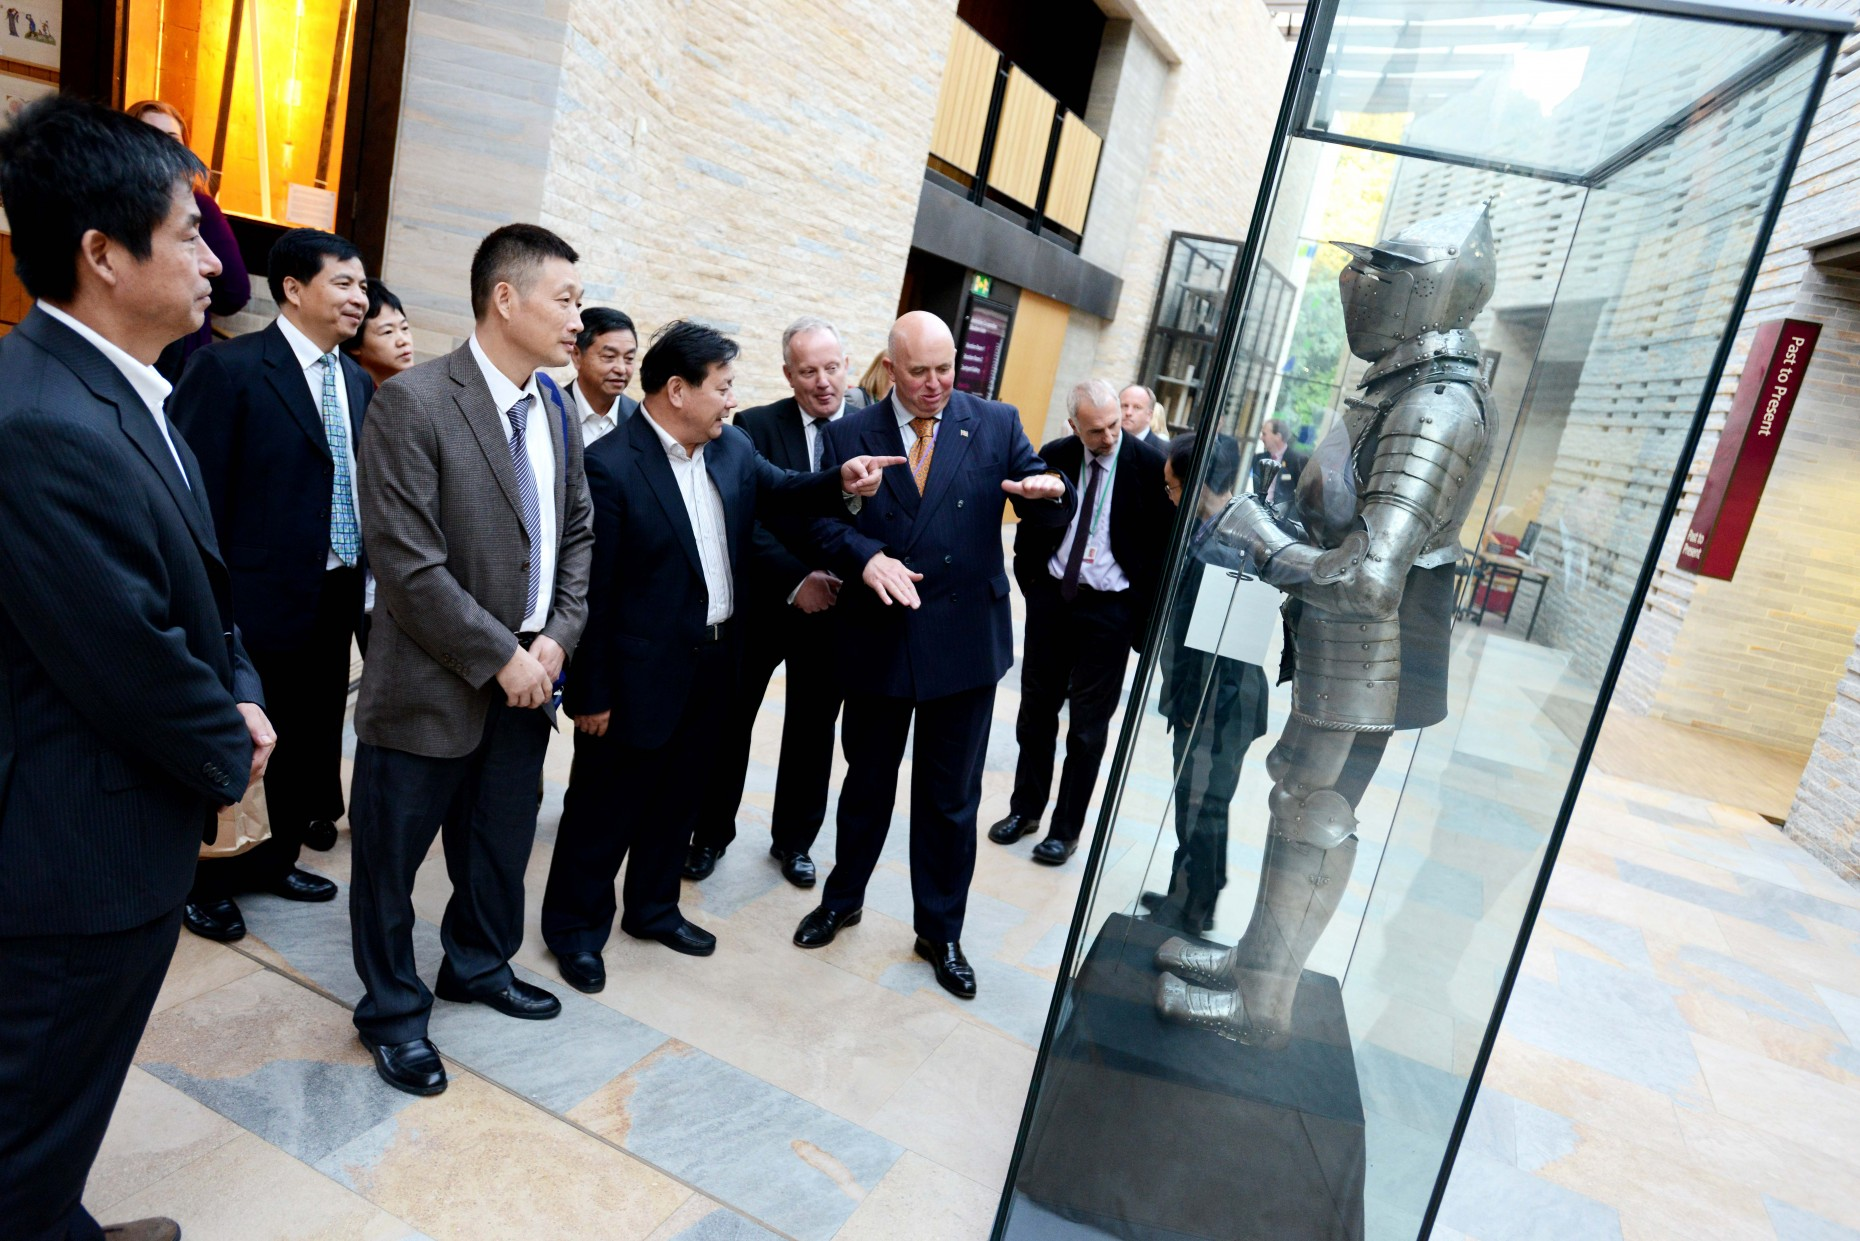 Councillor Colin Davie shows the visitors from Hanan province the historic sights of Lincoln